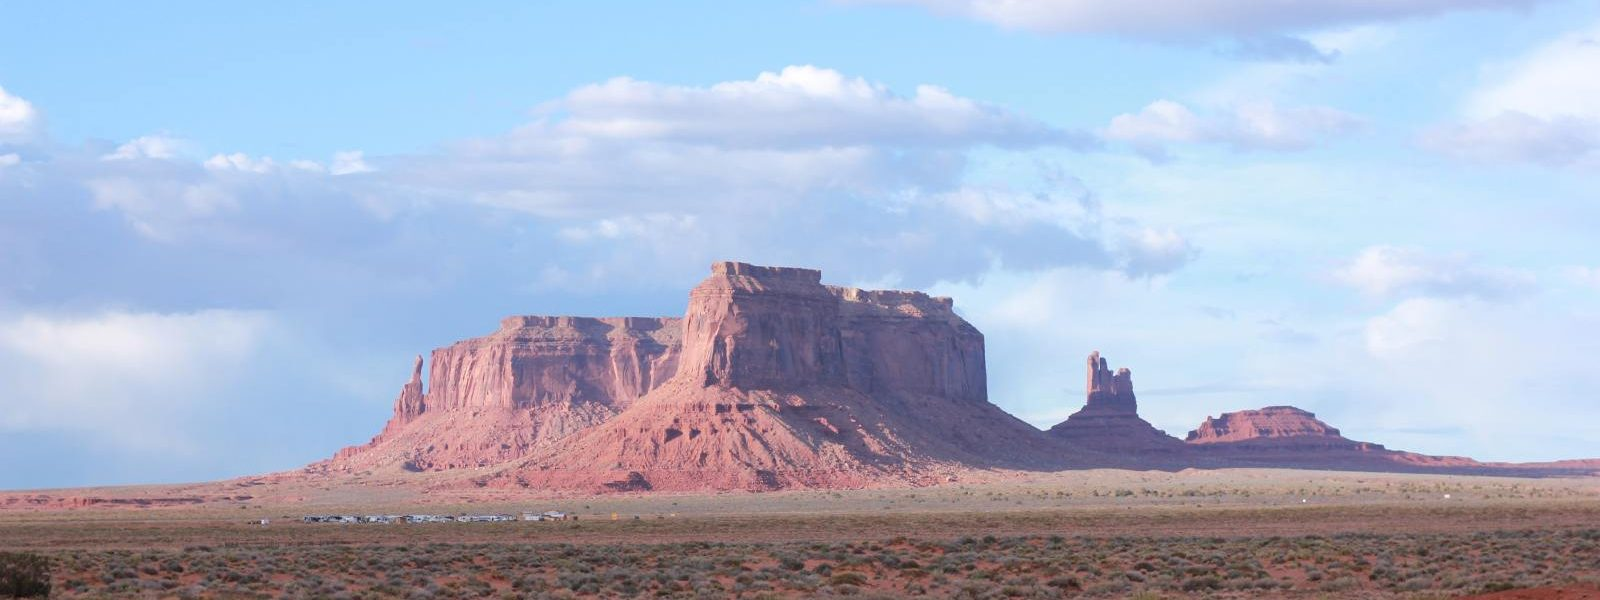 Visiting Monument Valley with Children